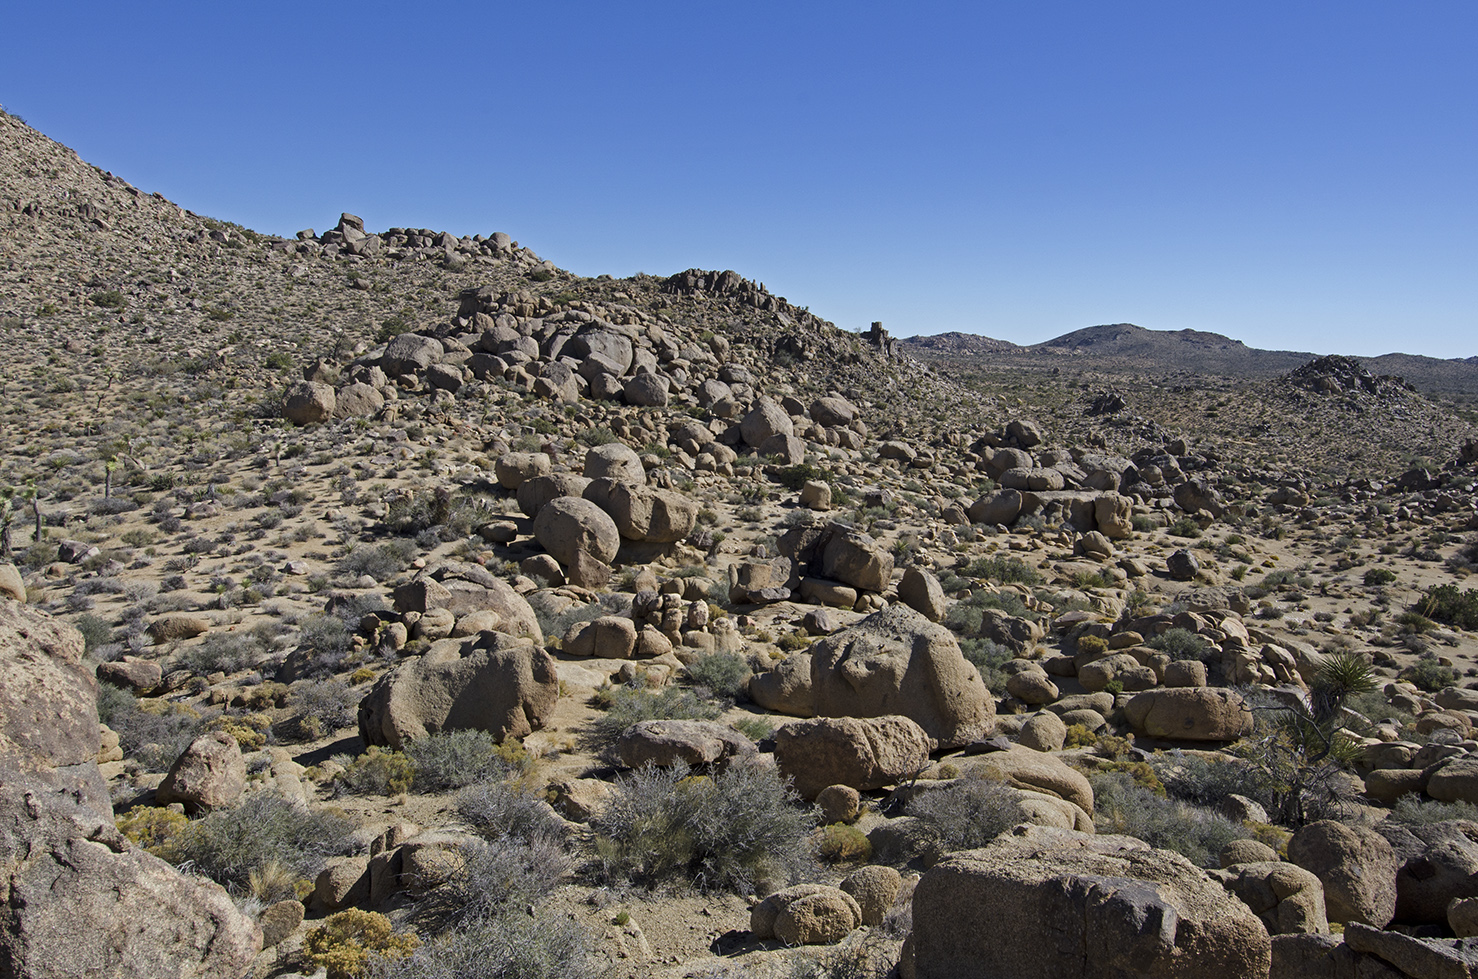 After climbing a little pile of boulders along the gps path, there are a lot of boulders still ahead.